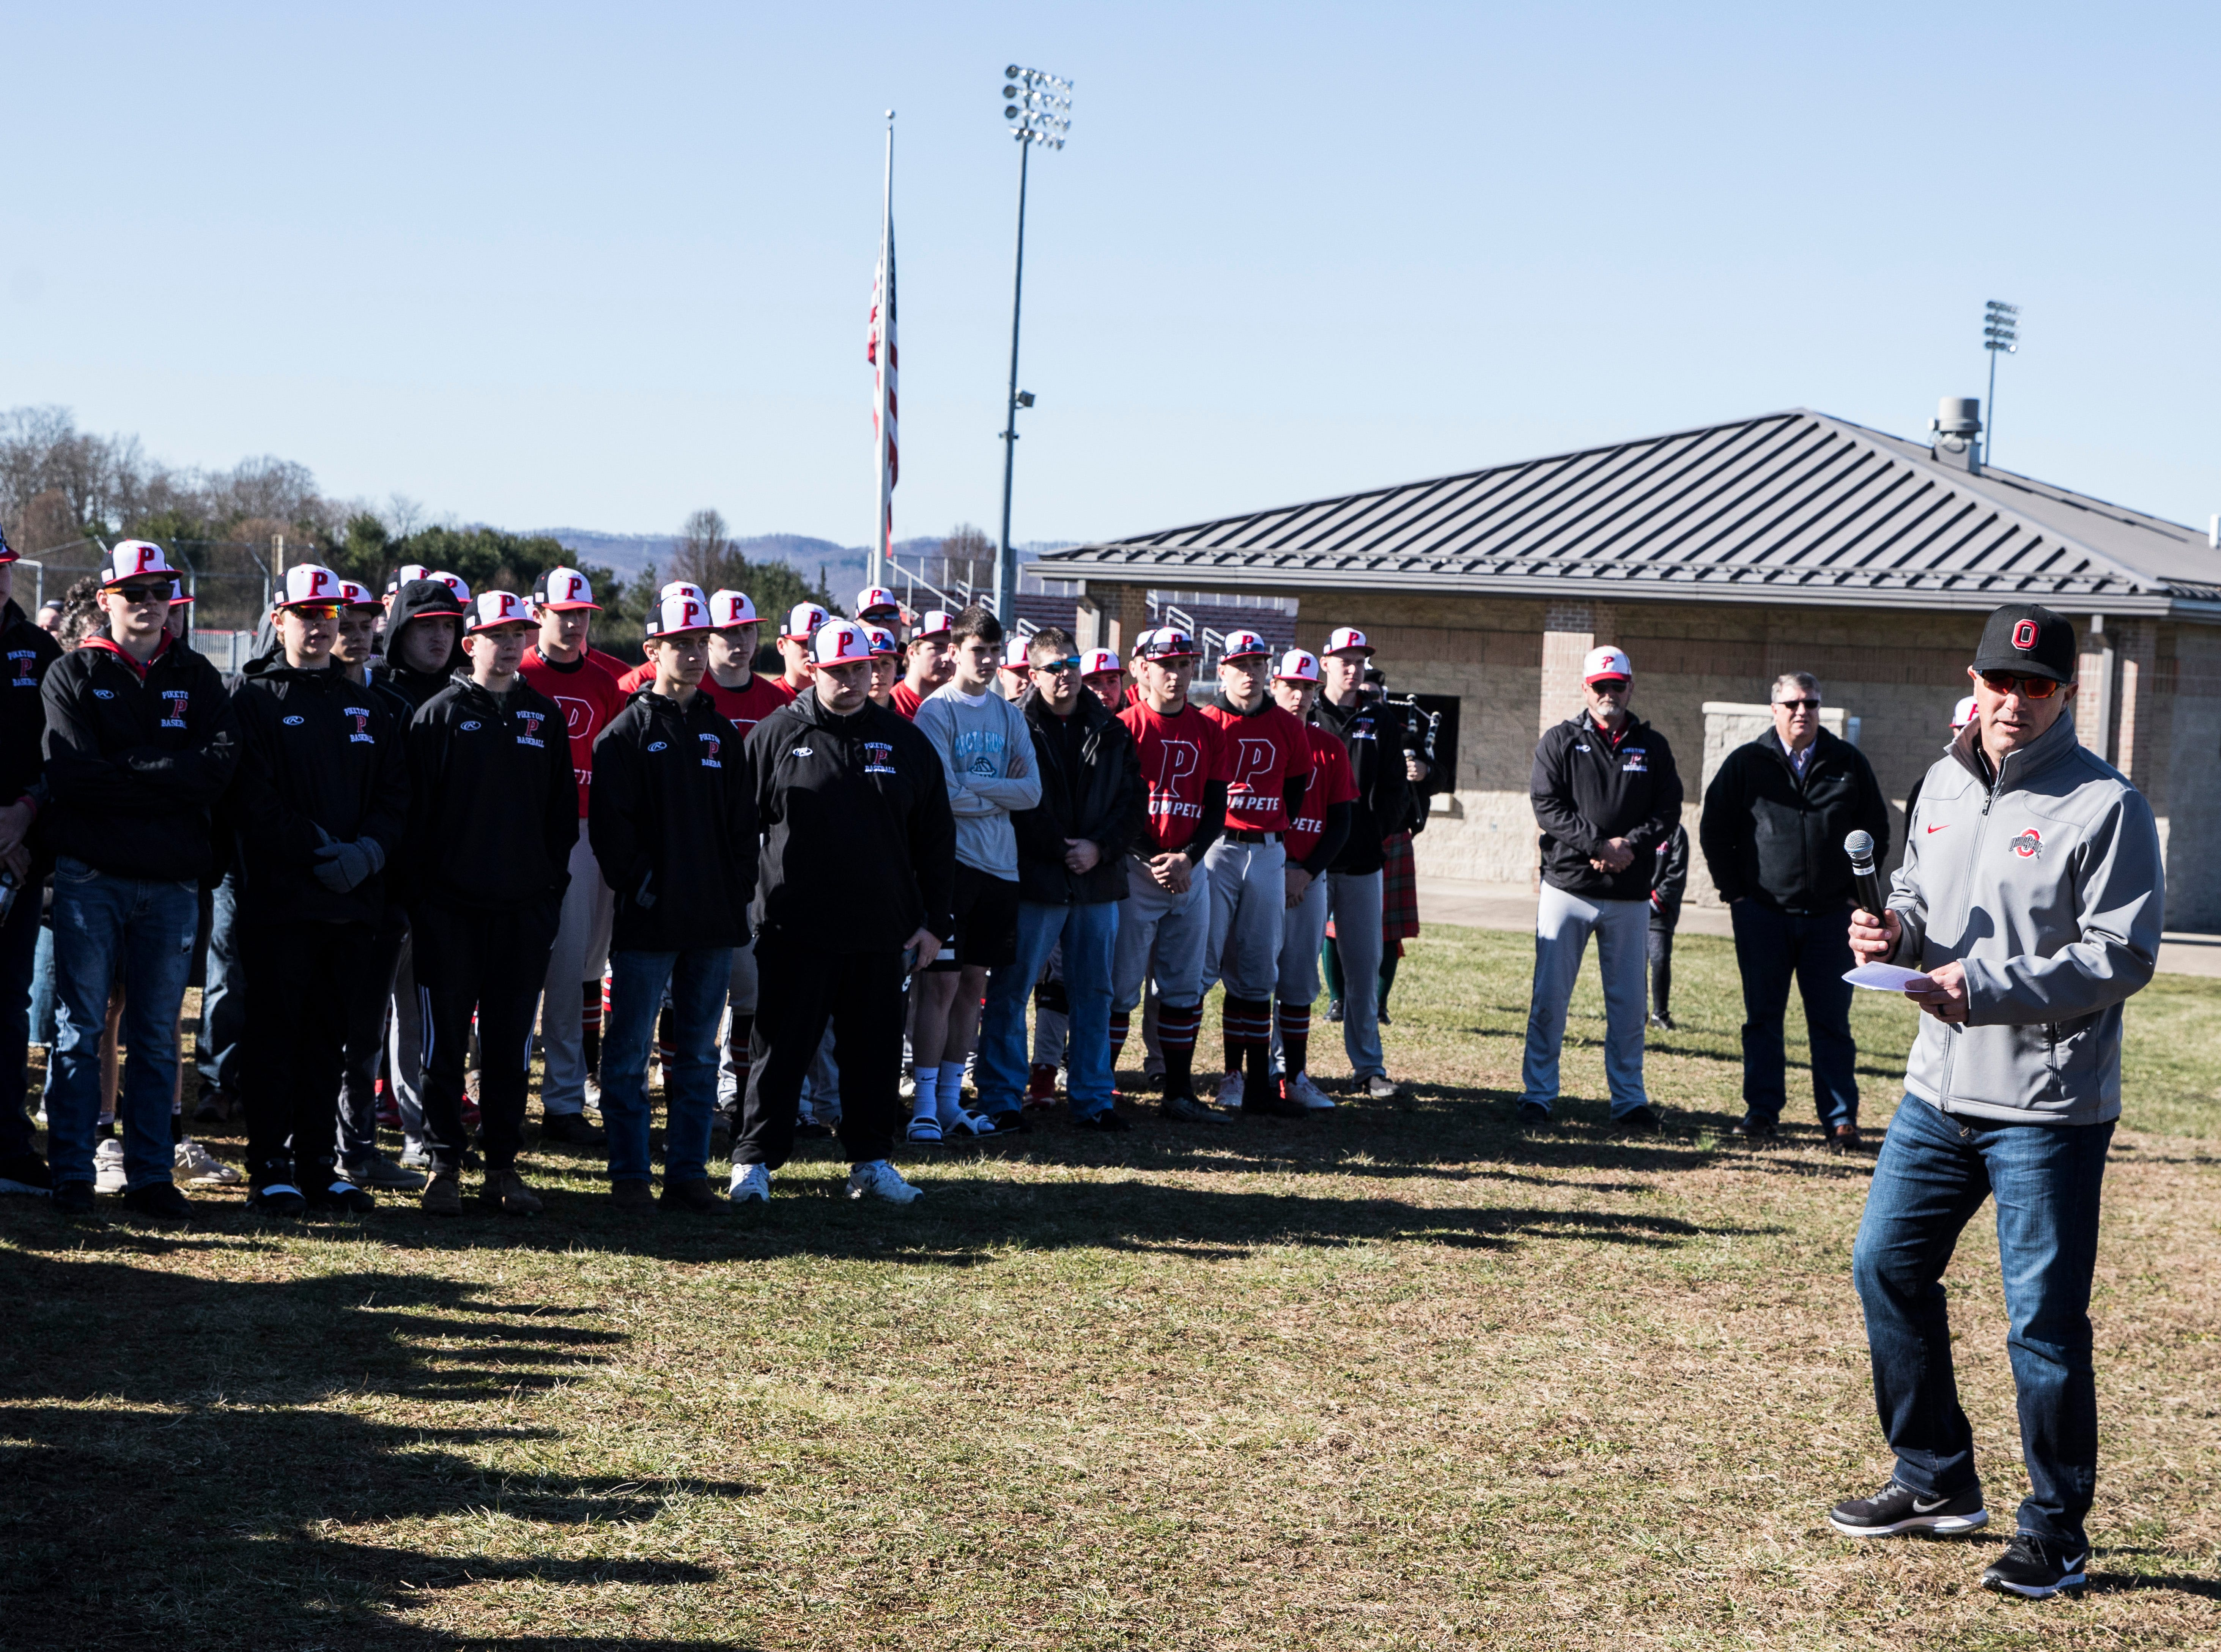 The Piketon baseball team honored former player Zach Farmer on Saturday, March 23, 2019, with a commemorative monument to celebrate his baseball career.